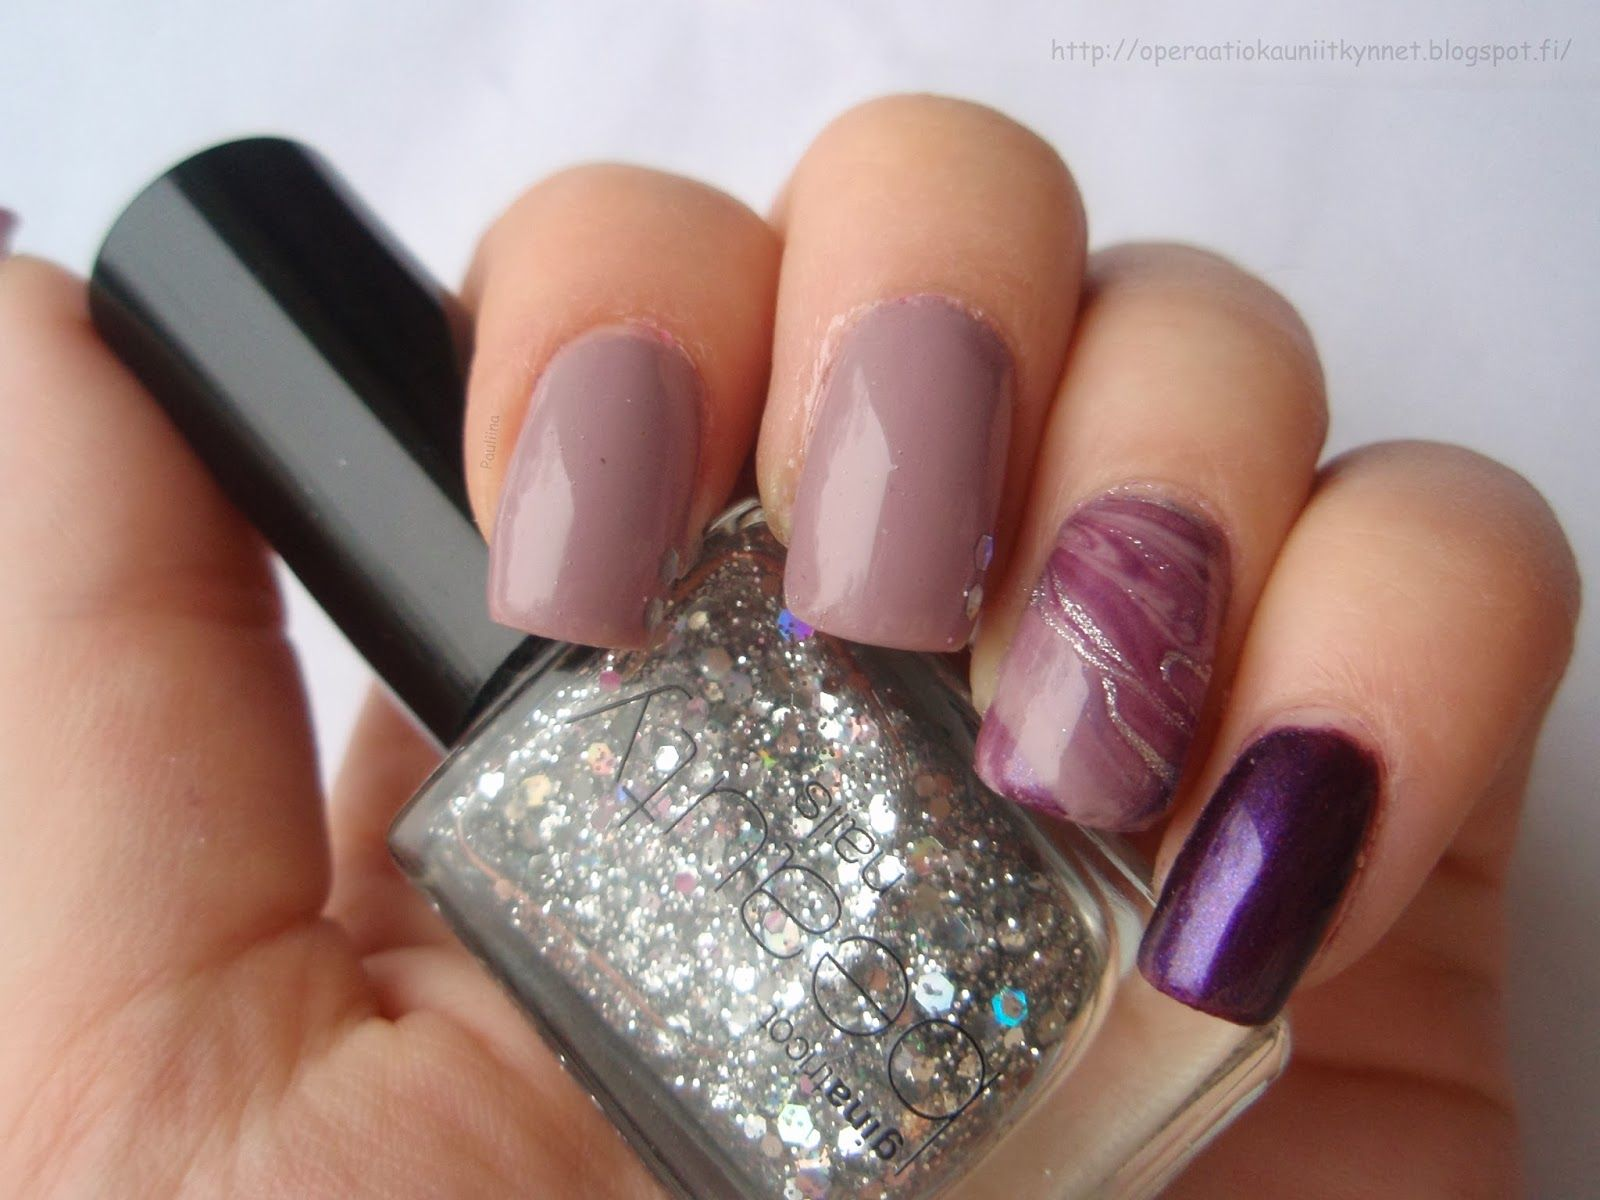 Day 6: Violet Nails - Depend 379, Lumene Natural Code Party On, OPI This Gown Needs A Crown, Gina Tricot Sparkling Silver